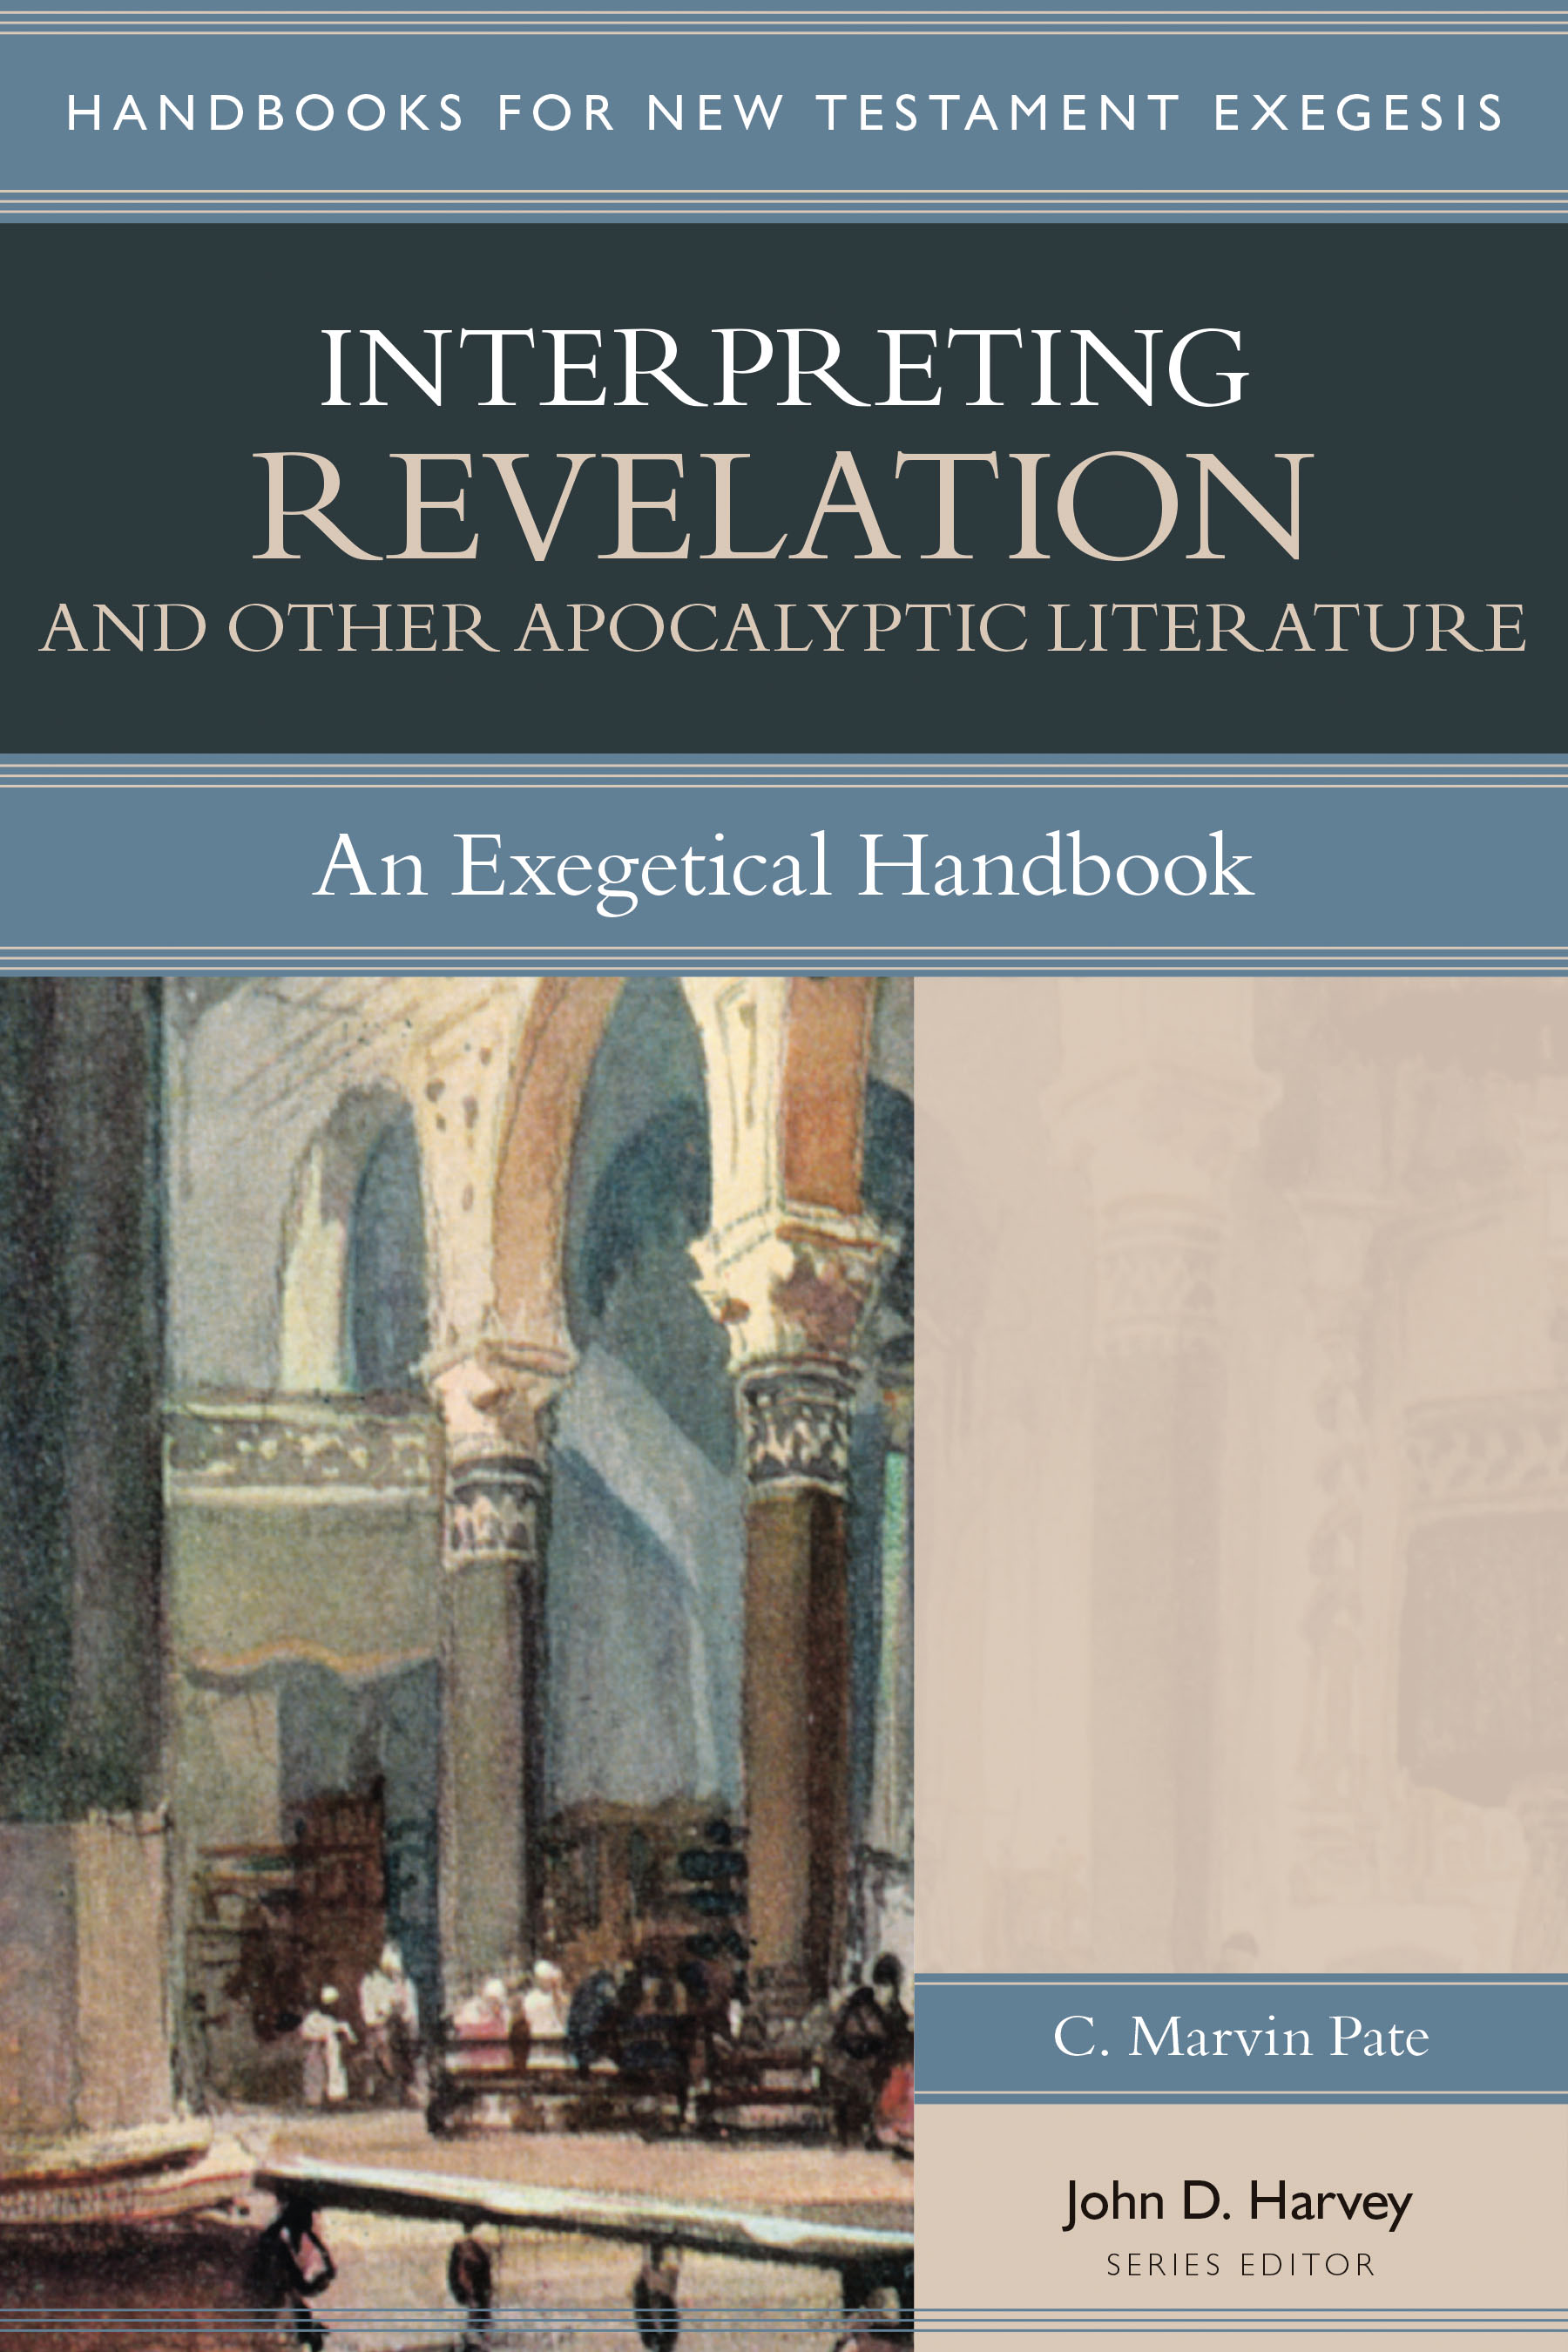 Interpreting Revelation and Other Apocalyptic Literature